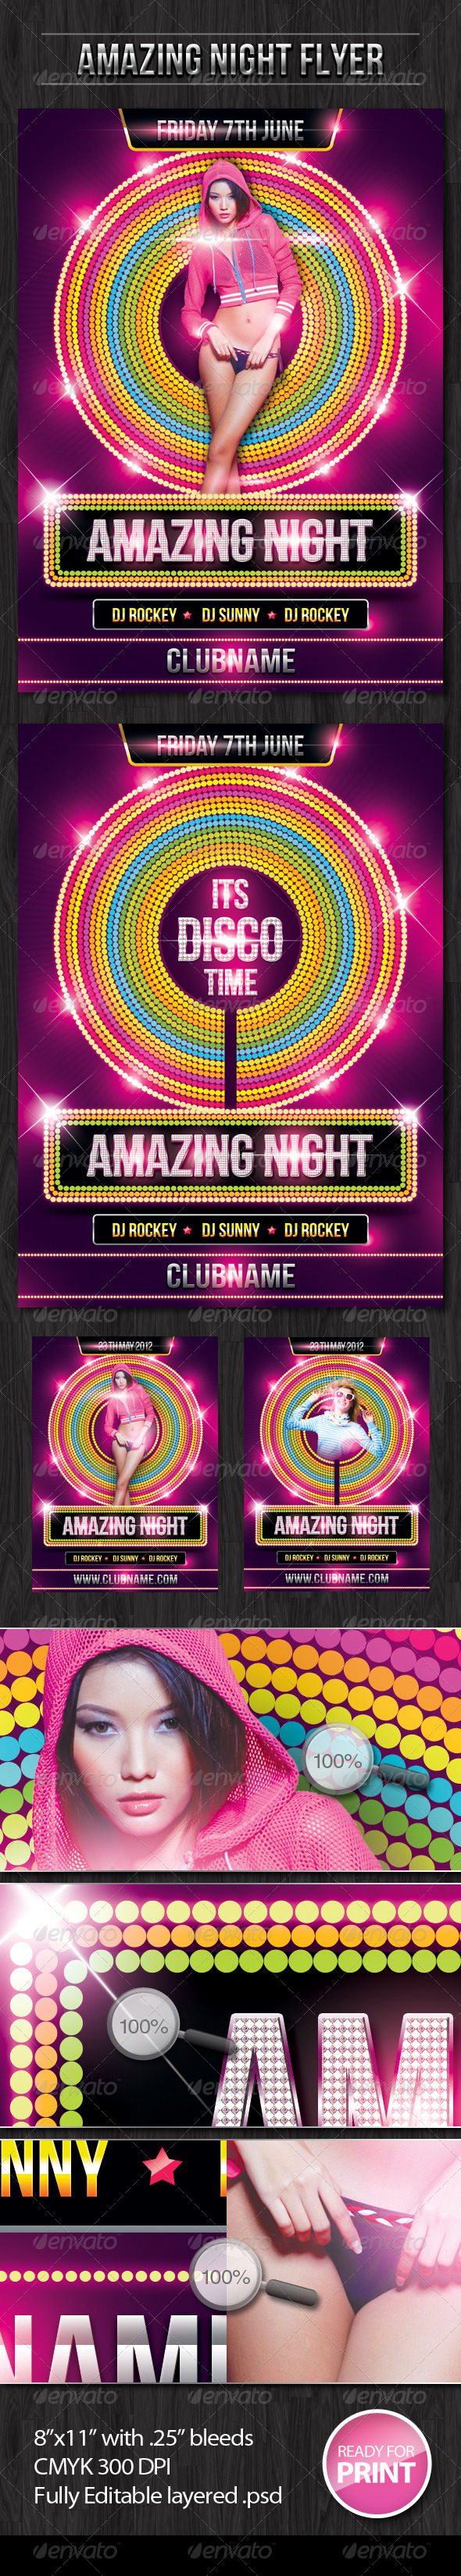 Amazing Night Flyer - Clubs & Parties Events